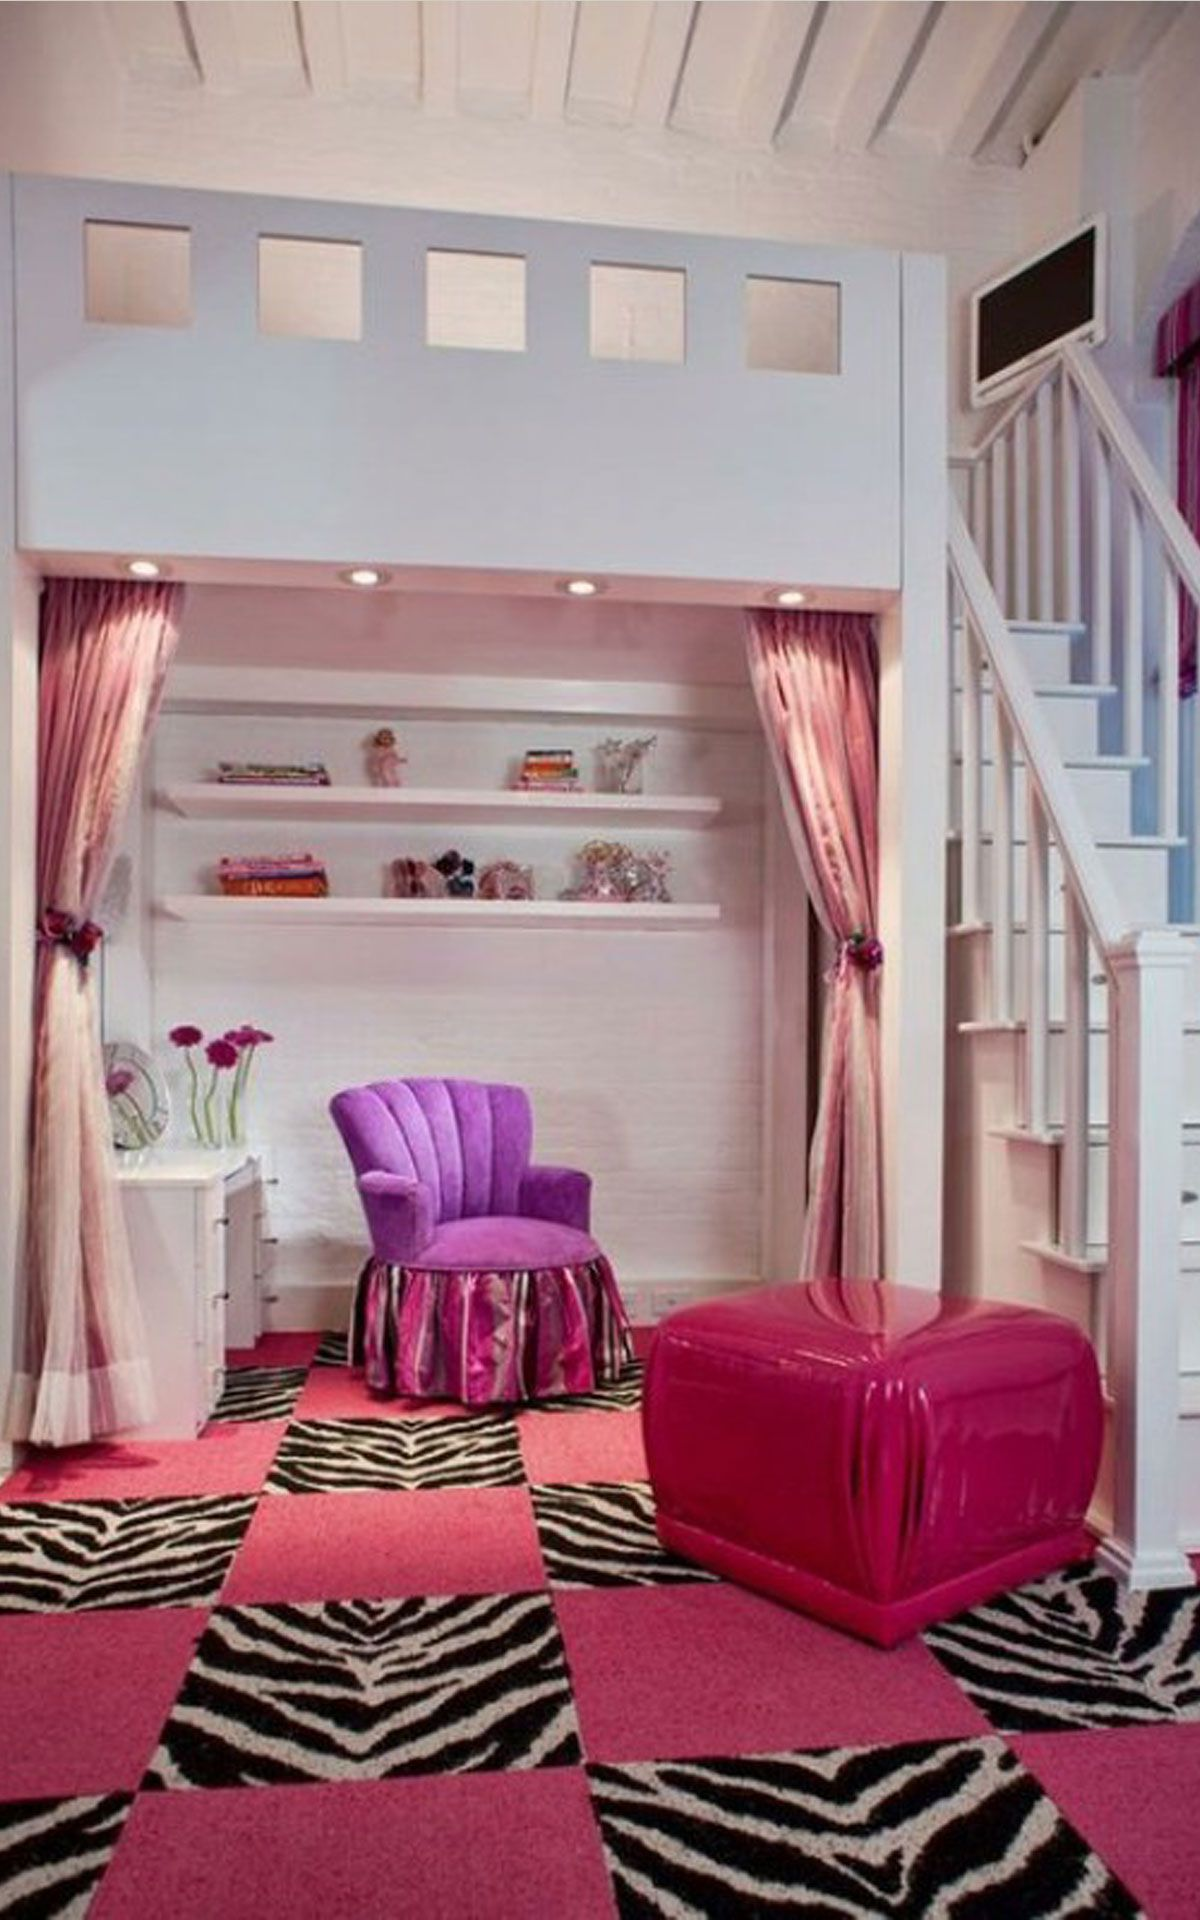 kids bedroom room ideas girls bedroom astonishing teenage girl room ideas houzz teenage girls room decor ideas in purple teenage girl room decor ideas - Teenage Girl Room Ideas Designs